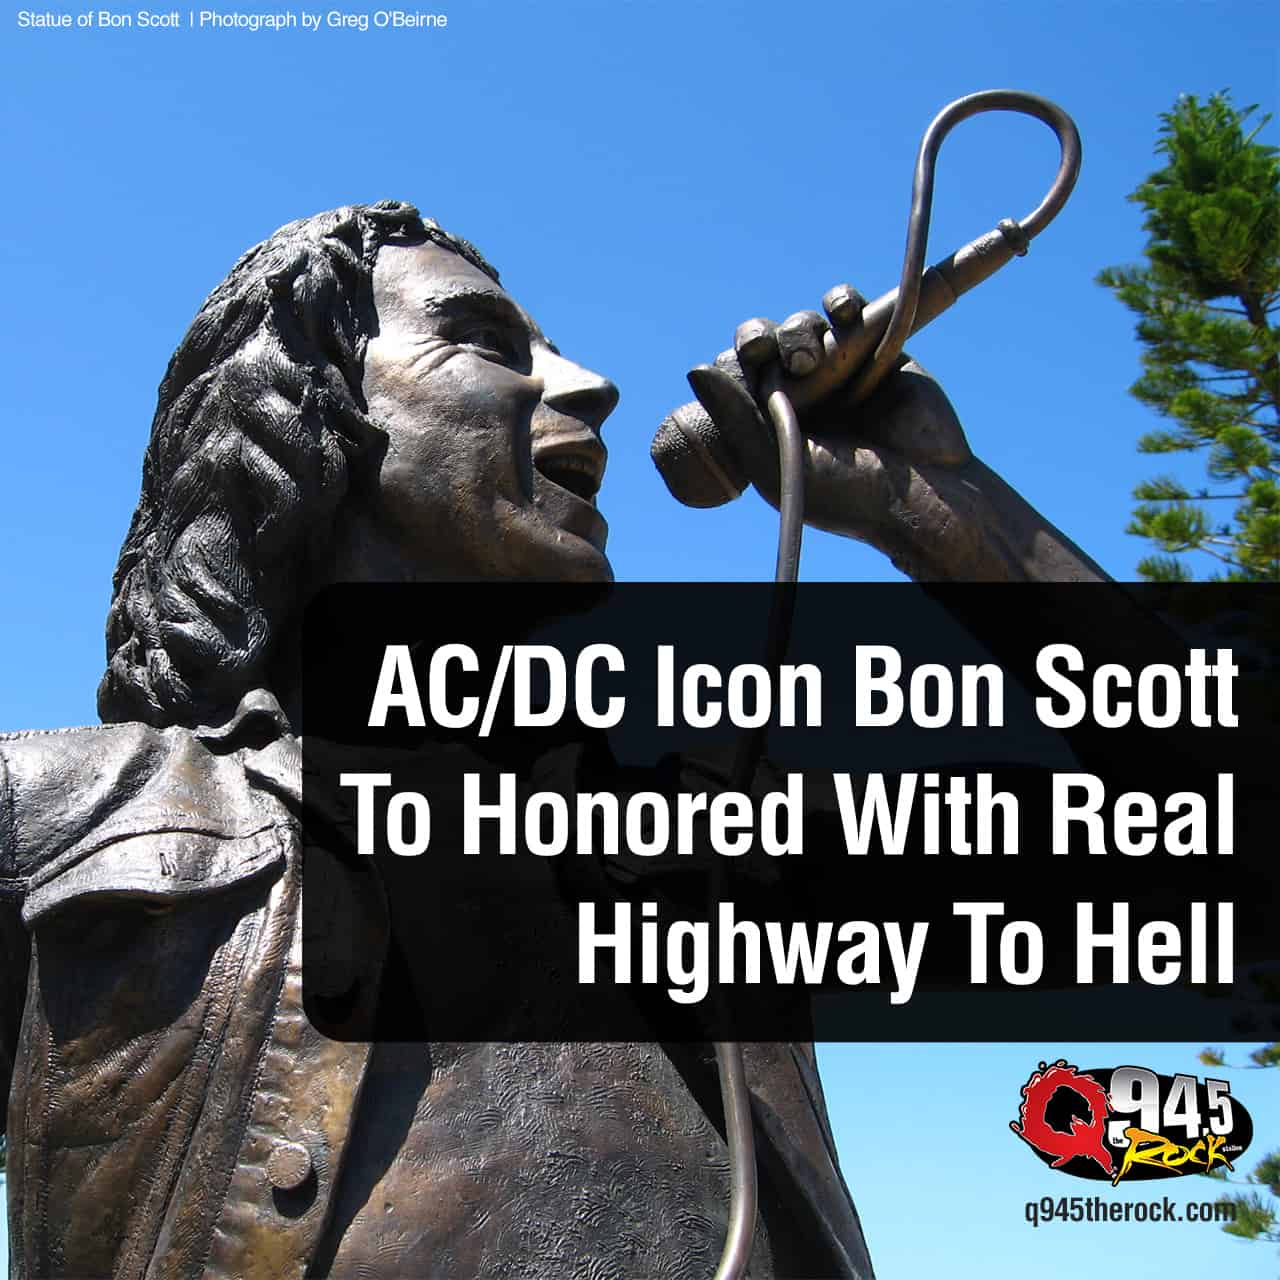 AC/DC Icon Bon Scott To Honored With Real Highway To Hell